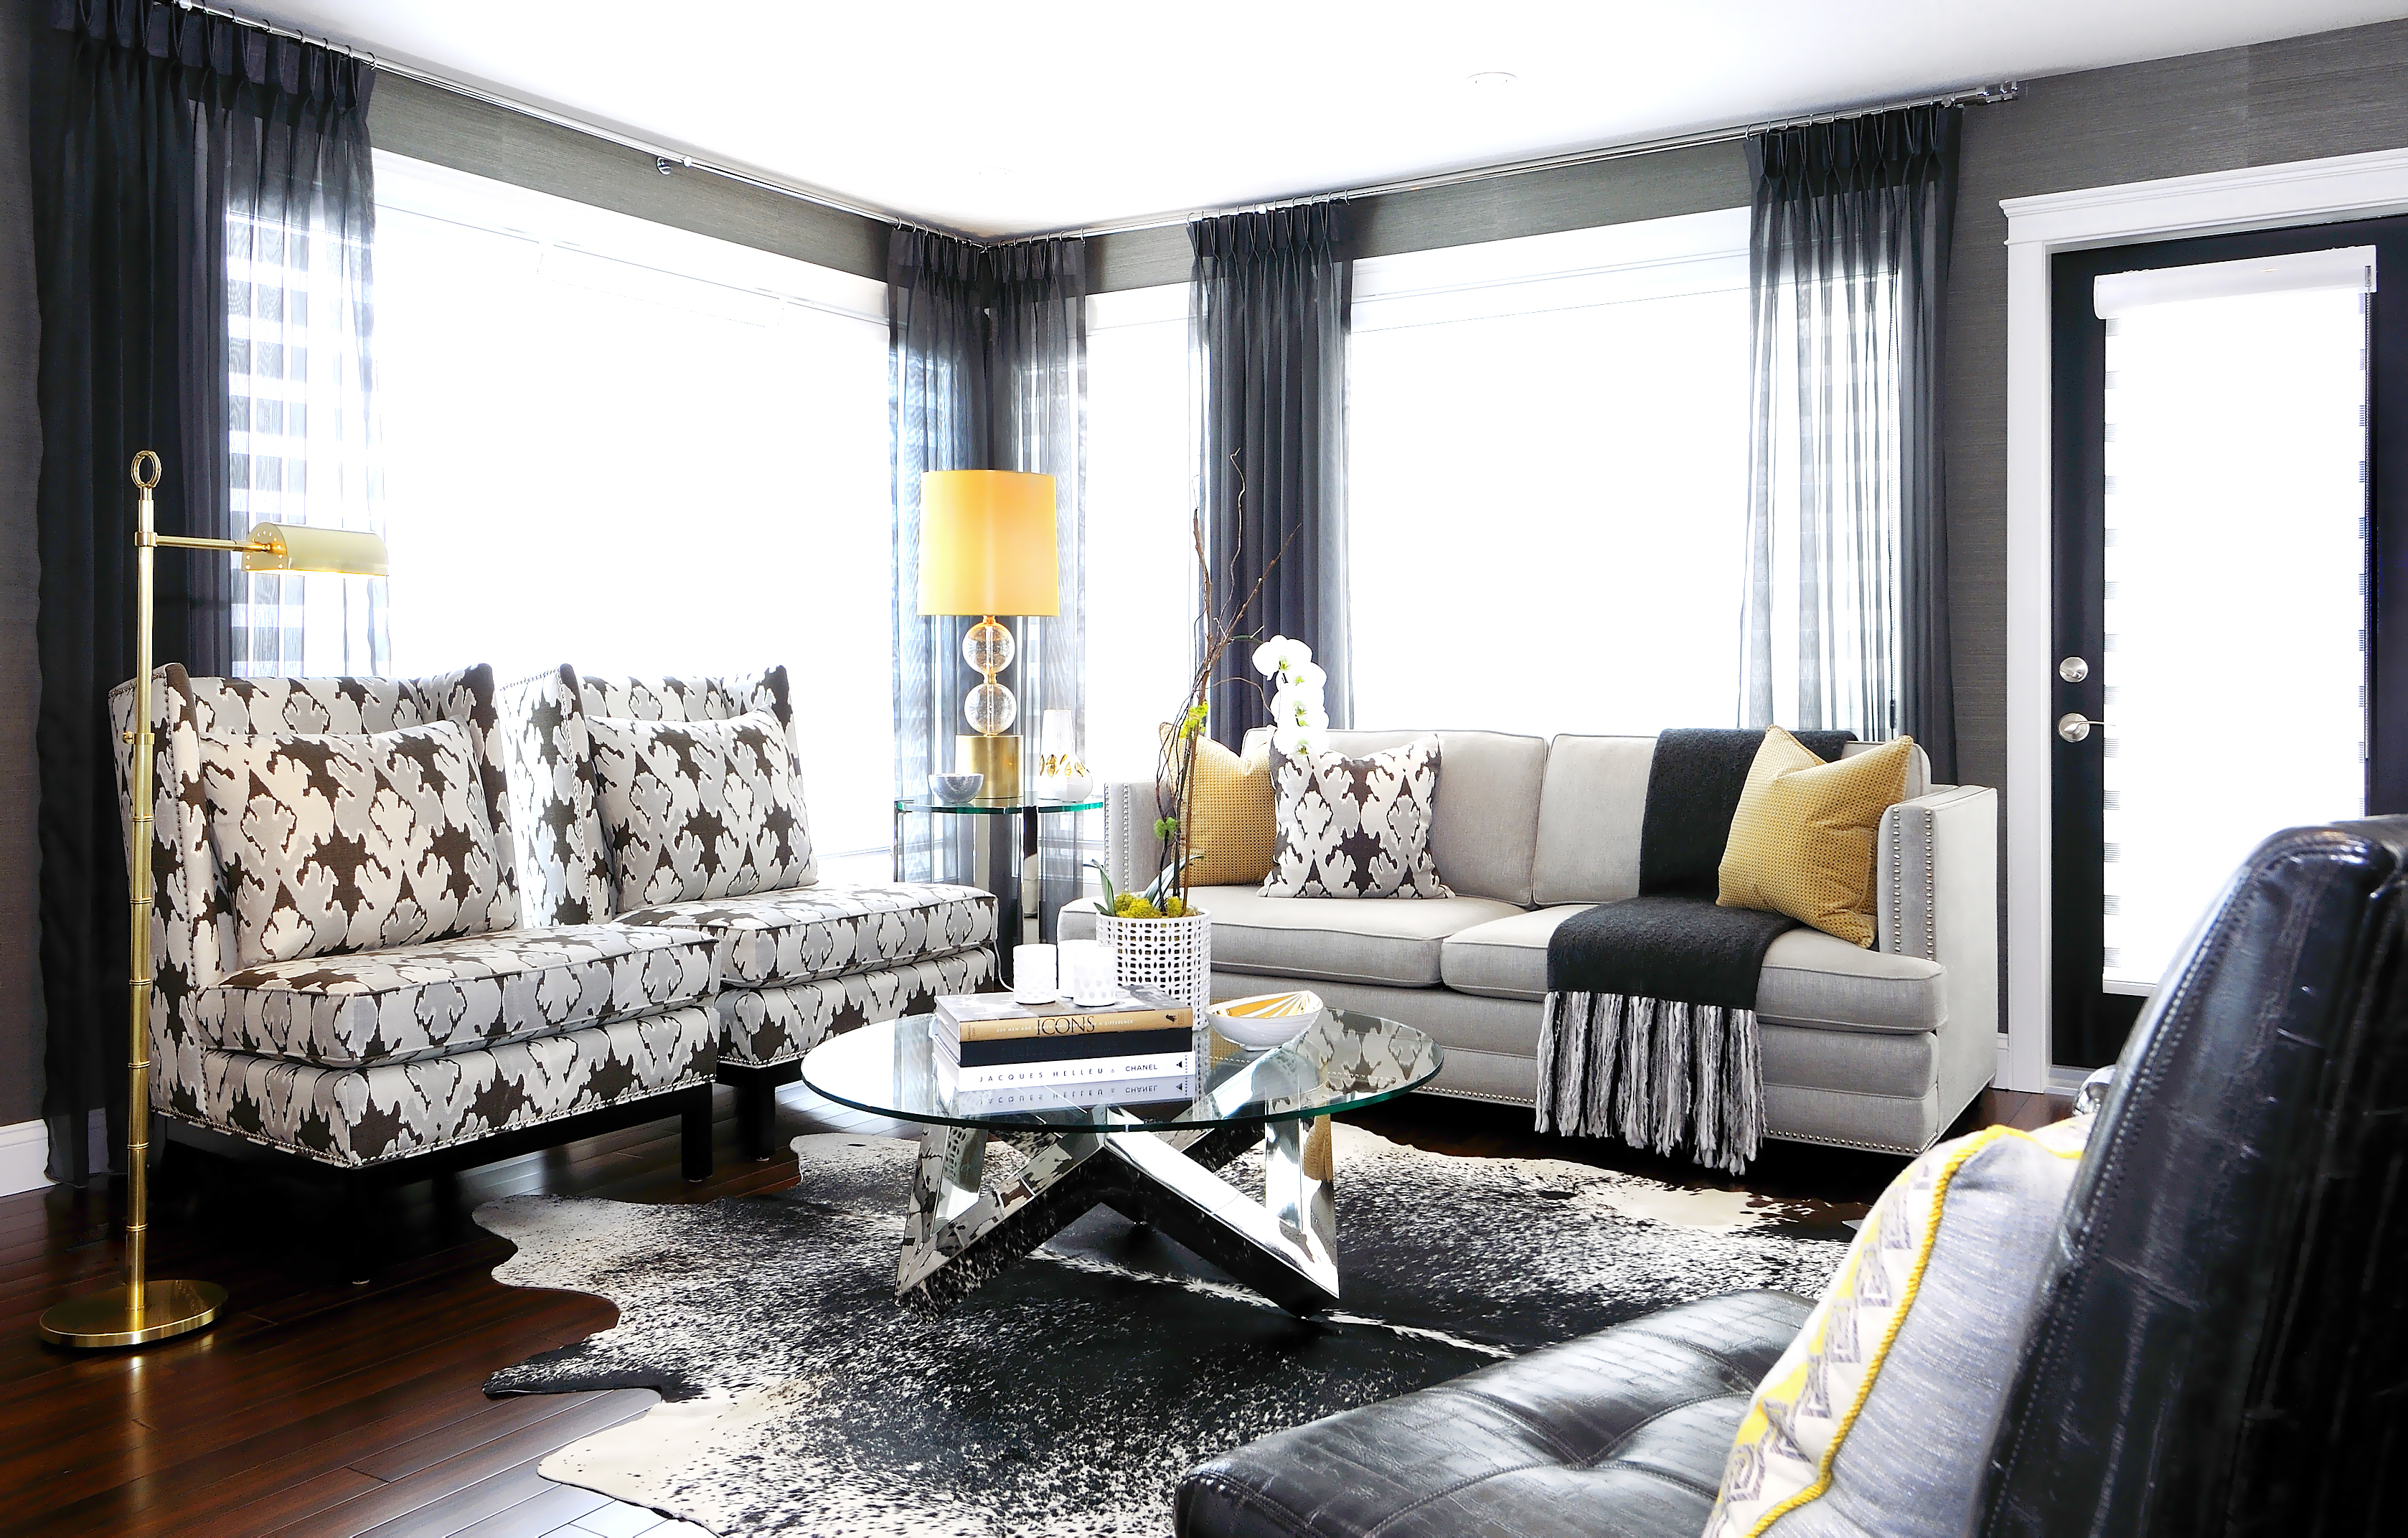 The Atmosphere How To: Finish Off A Room